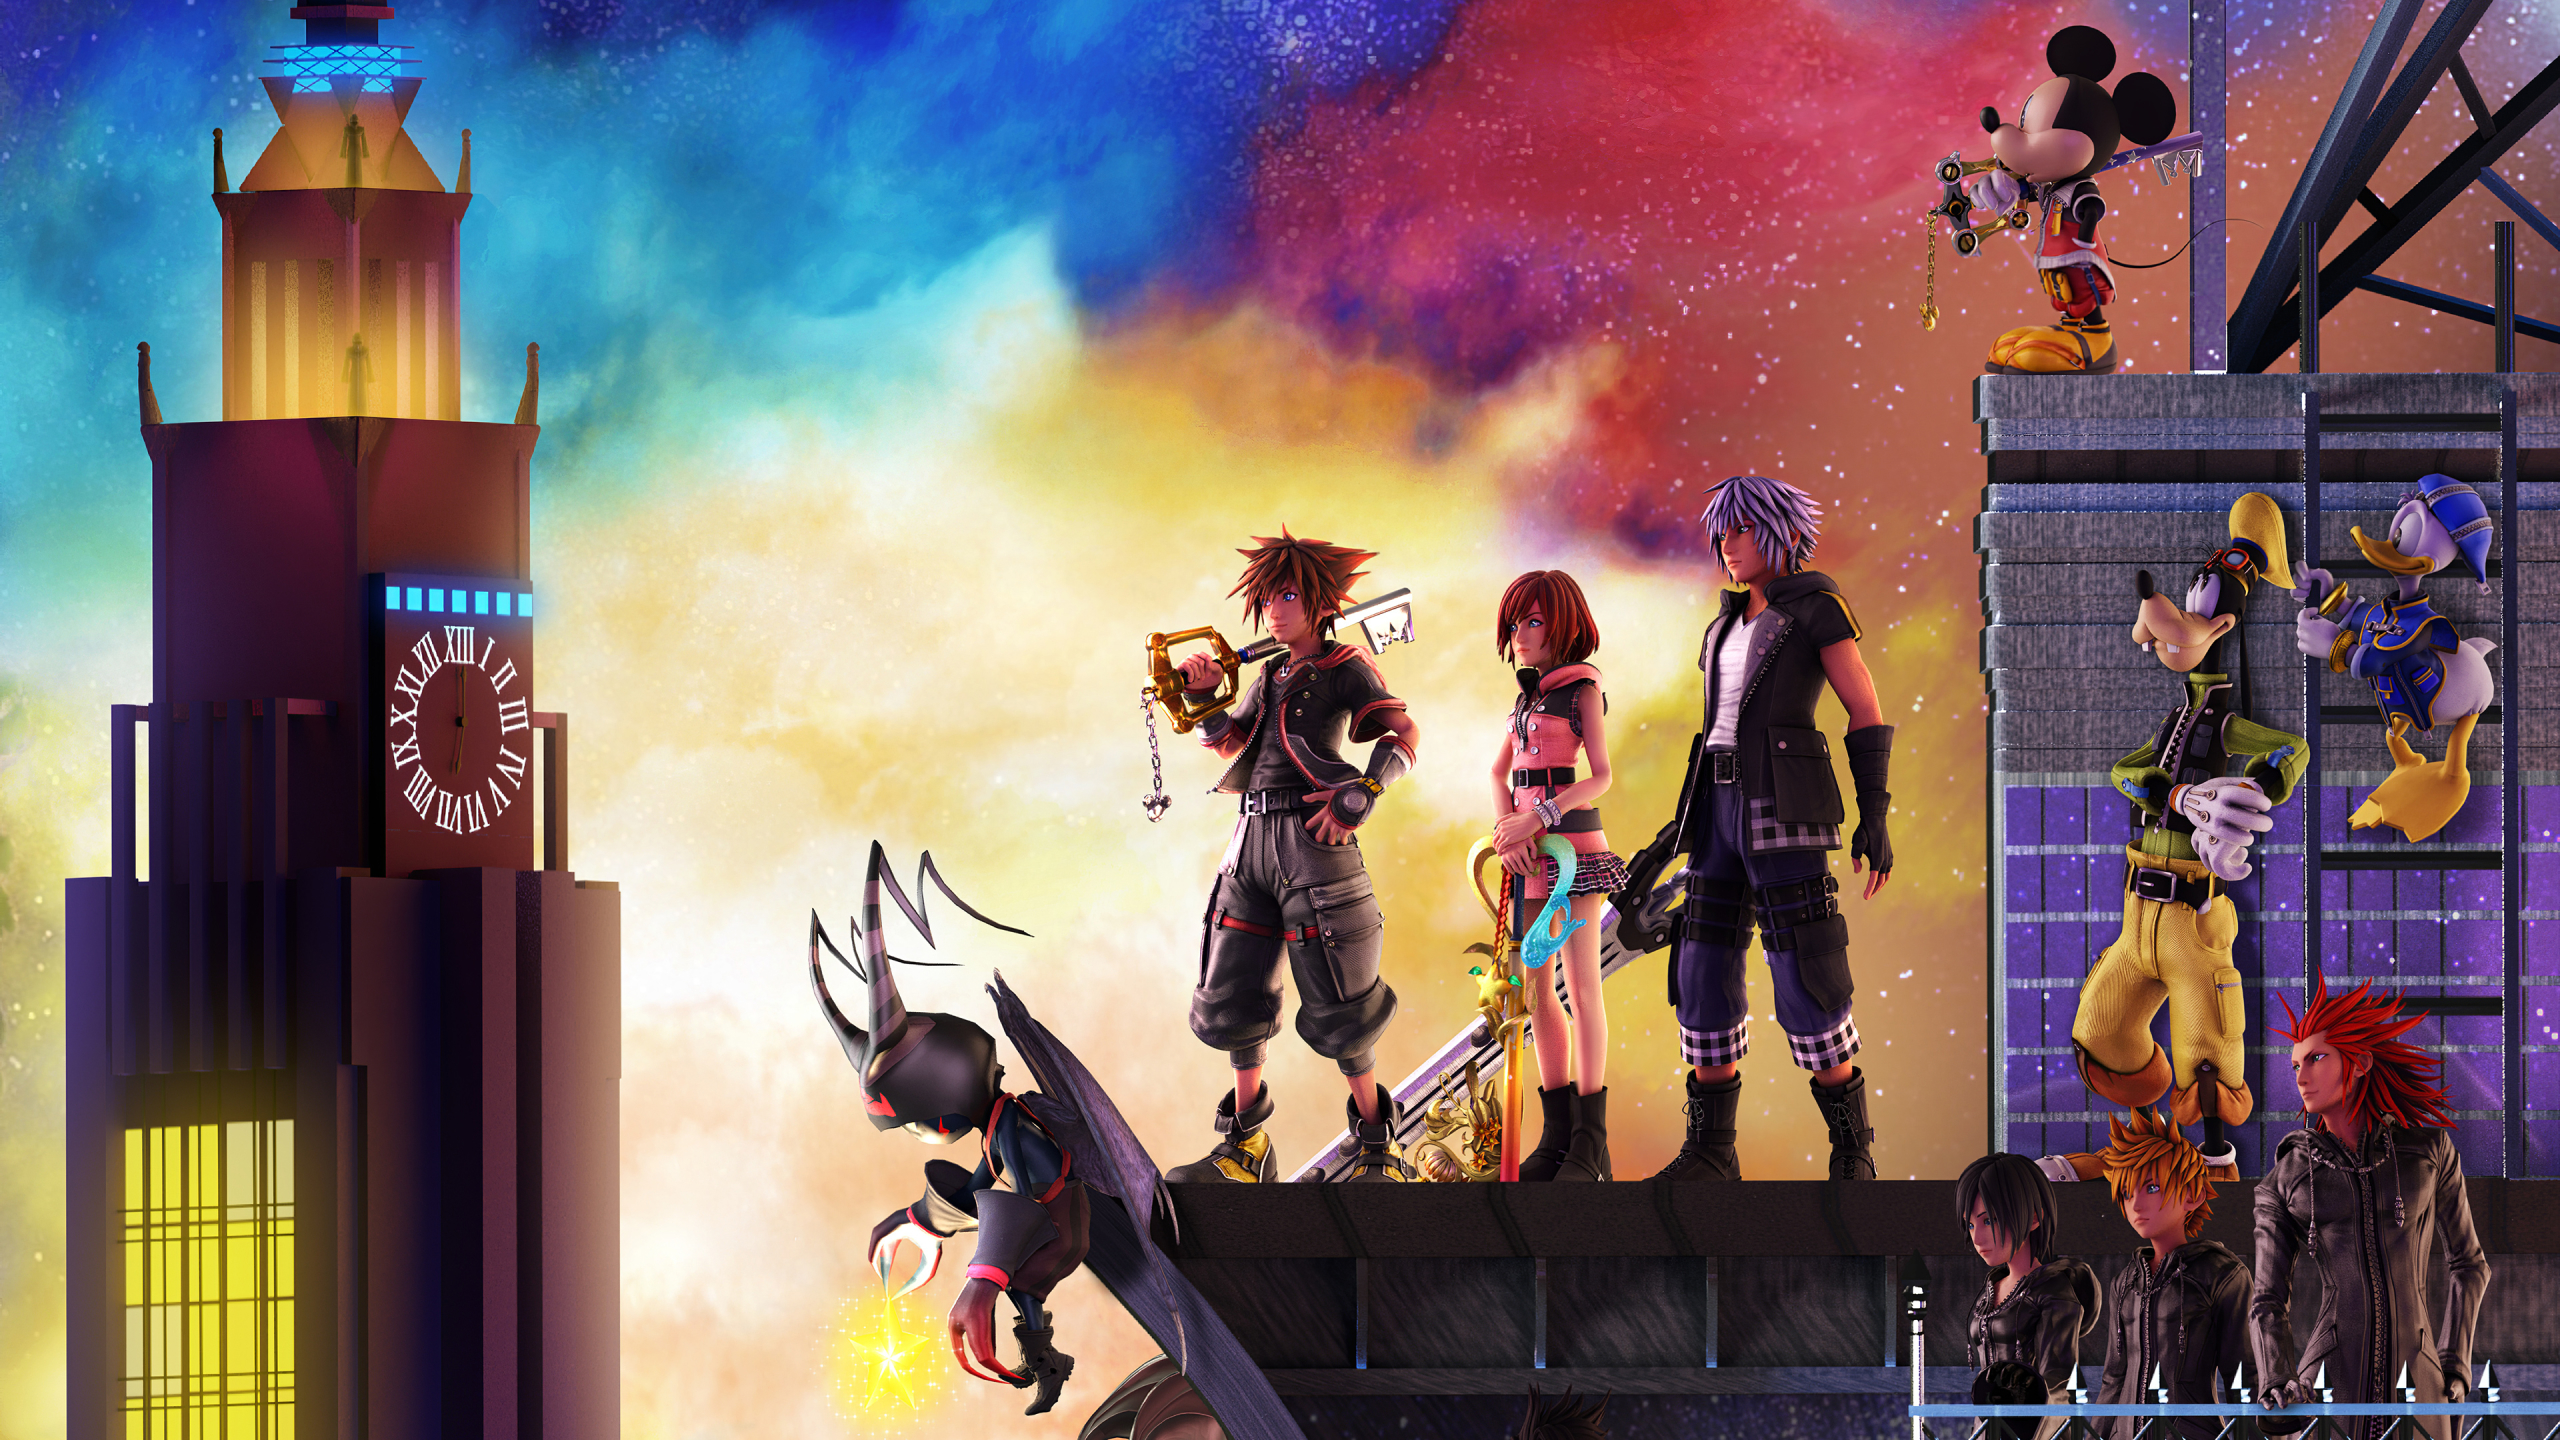 2560x1440 Kingdom Hearts 3 1440p Resolution Wallpaper Hd Games 4k